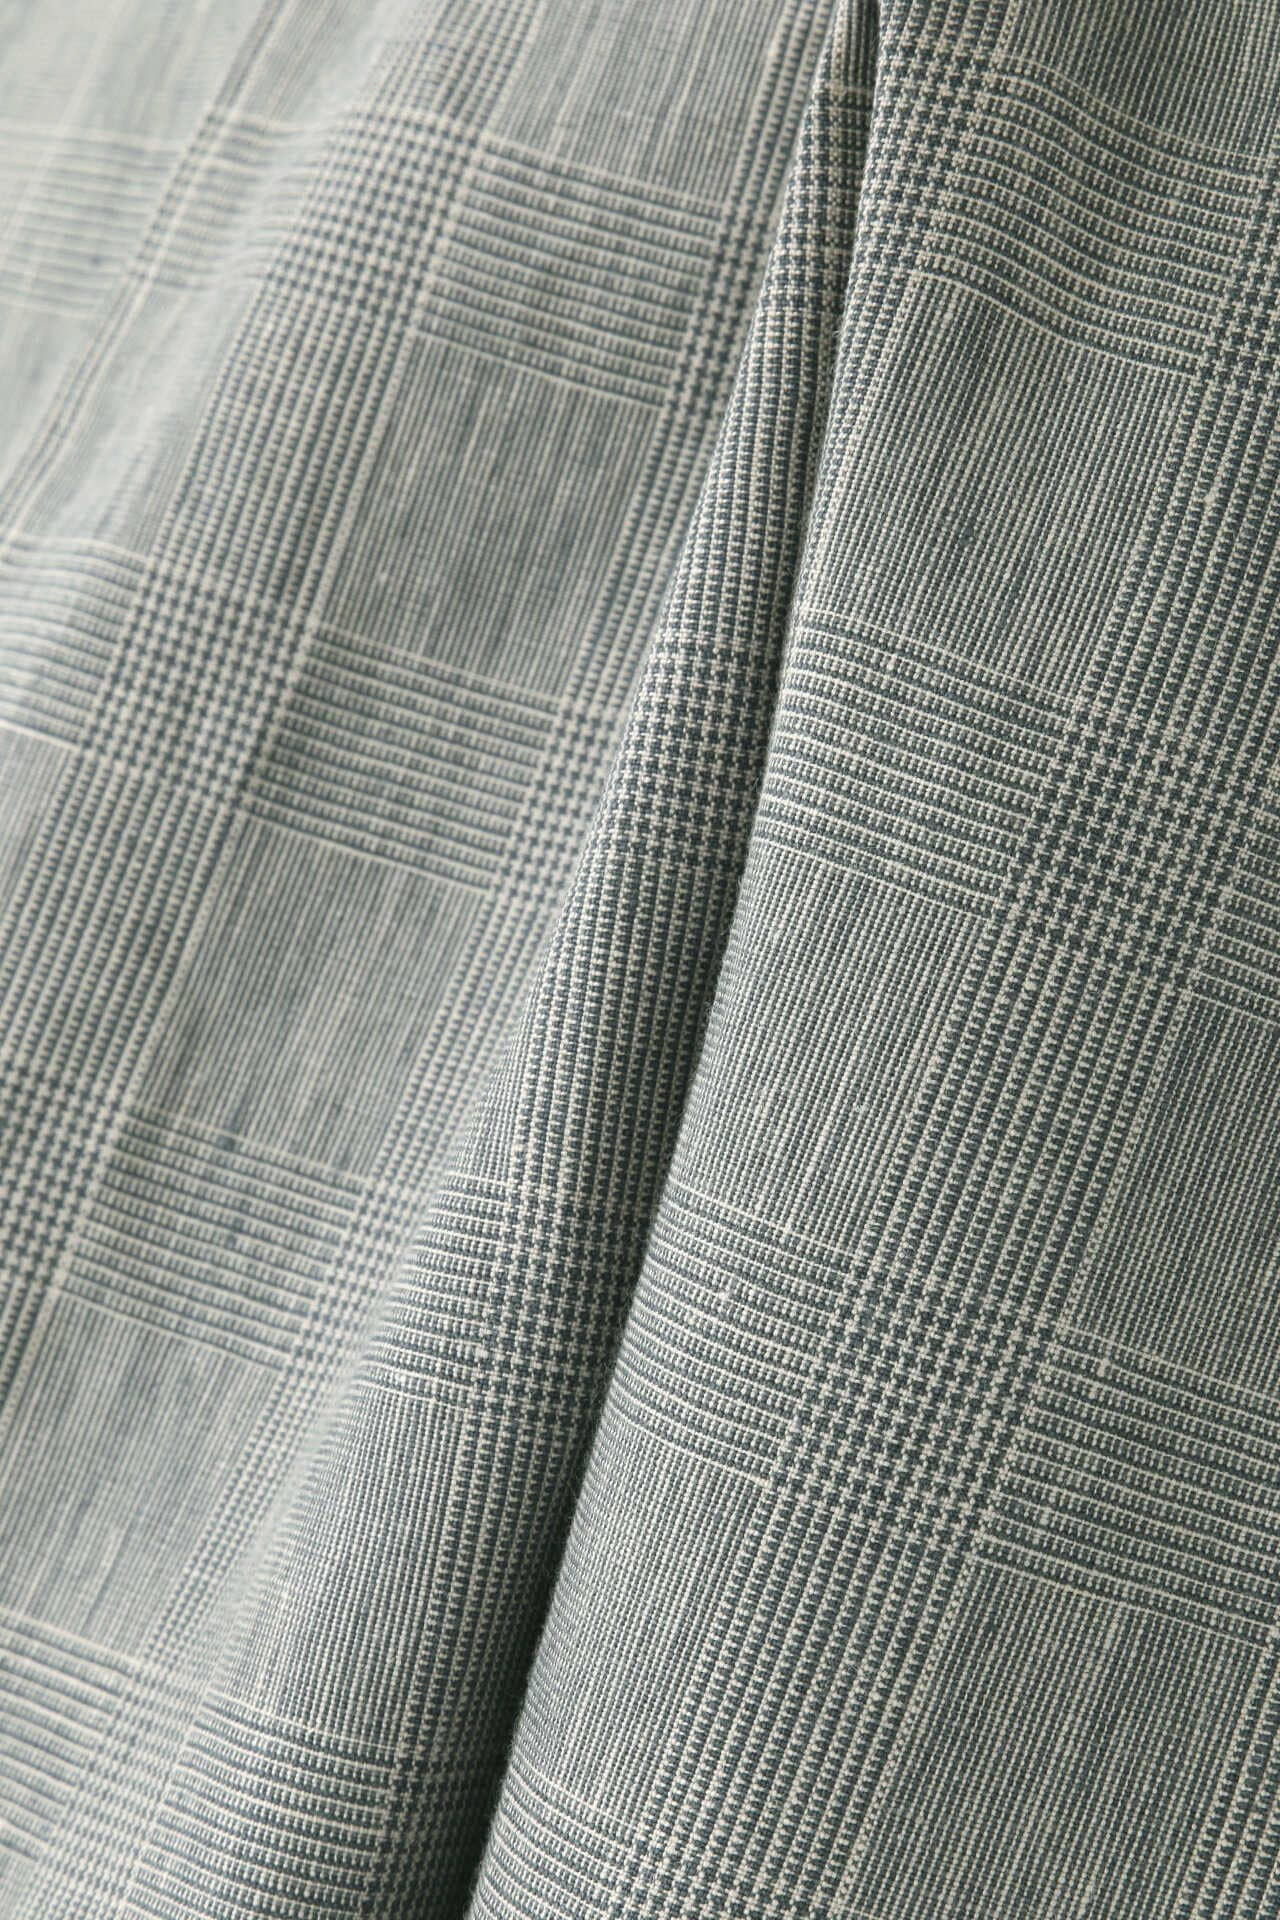 PRINCE OF WALES LINEN3